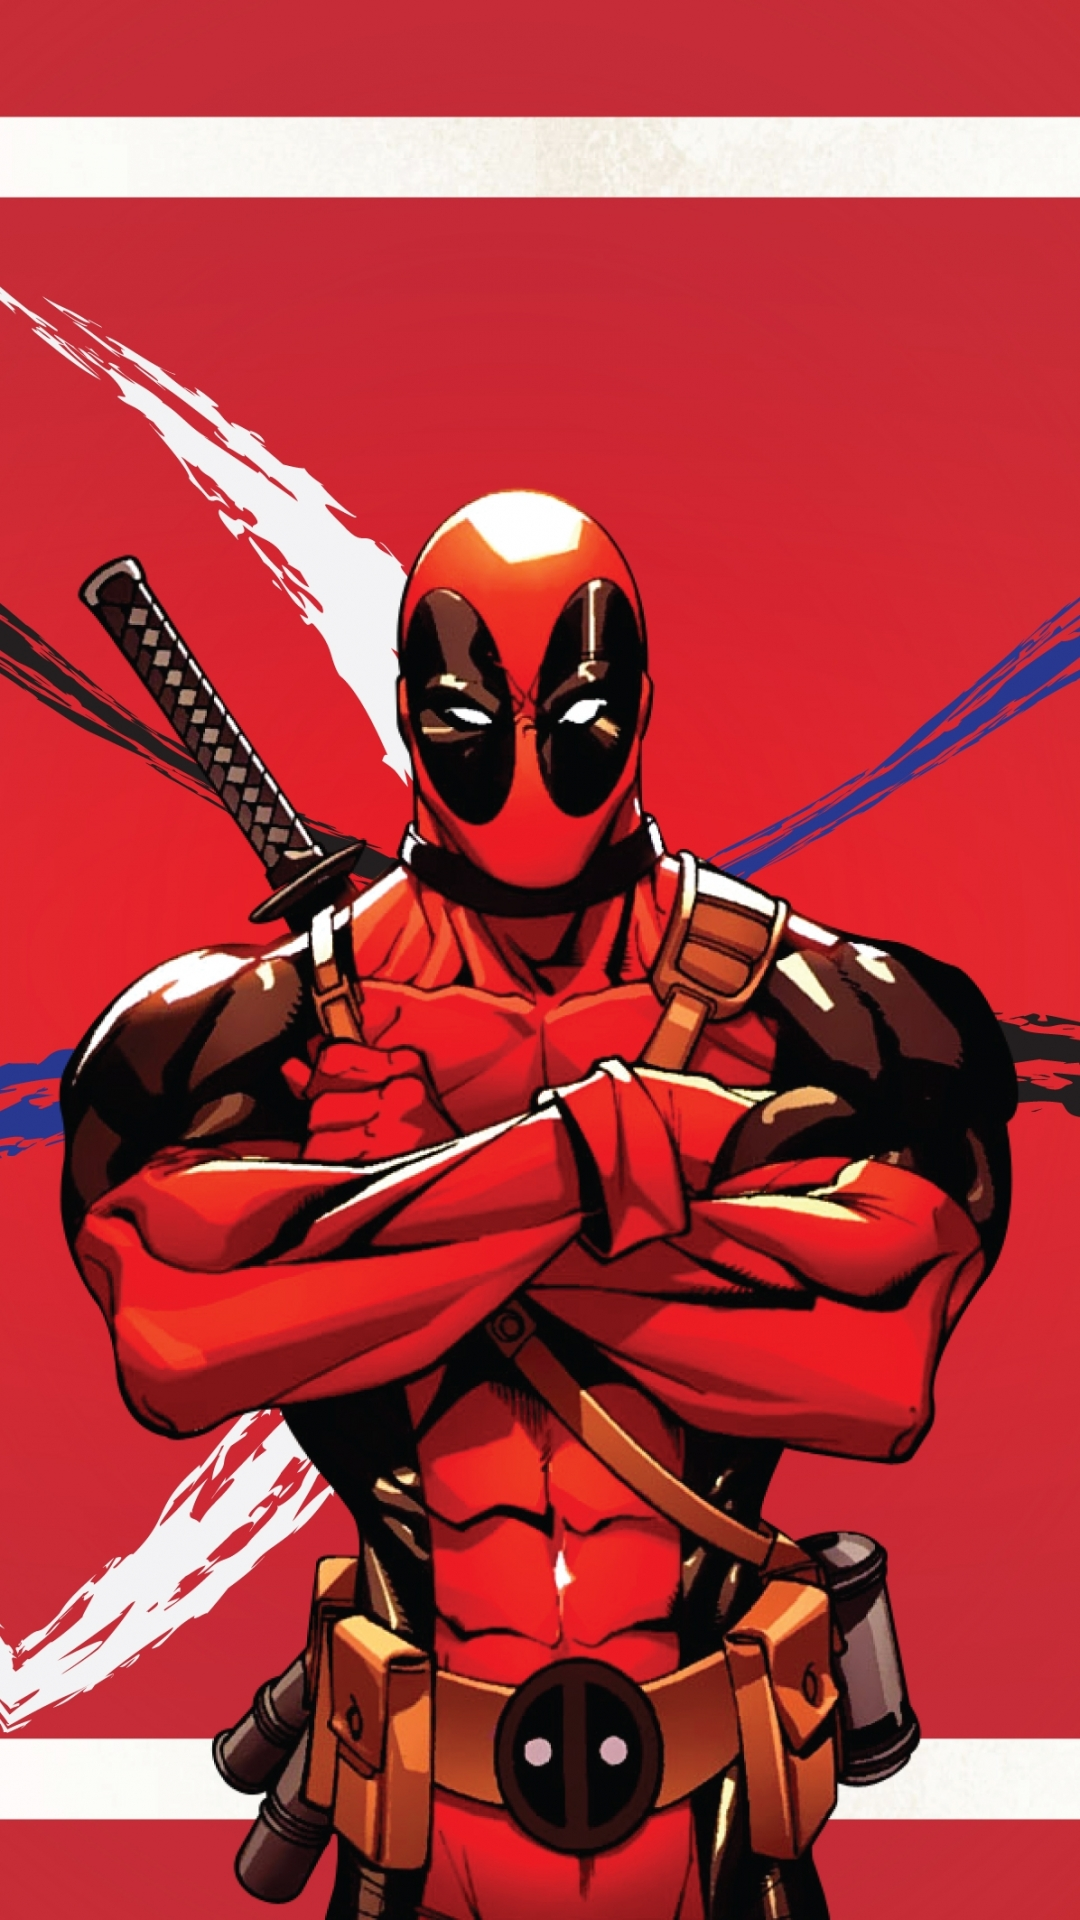 Deadpool Wallpapers for Iphone 7, Iphone 7 plus, Iphone 6 plus